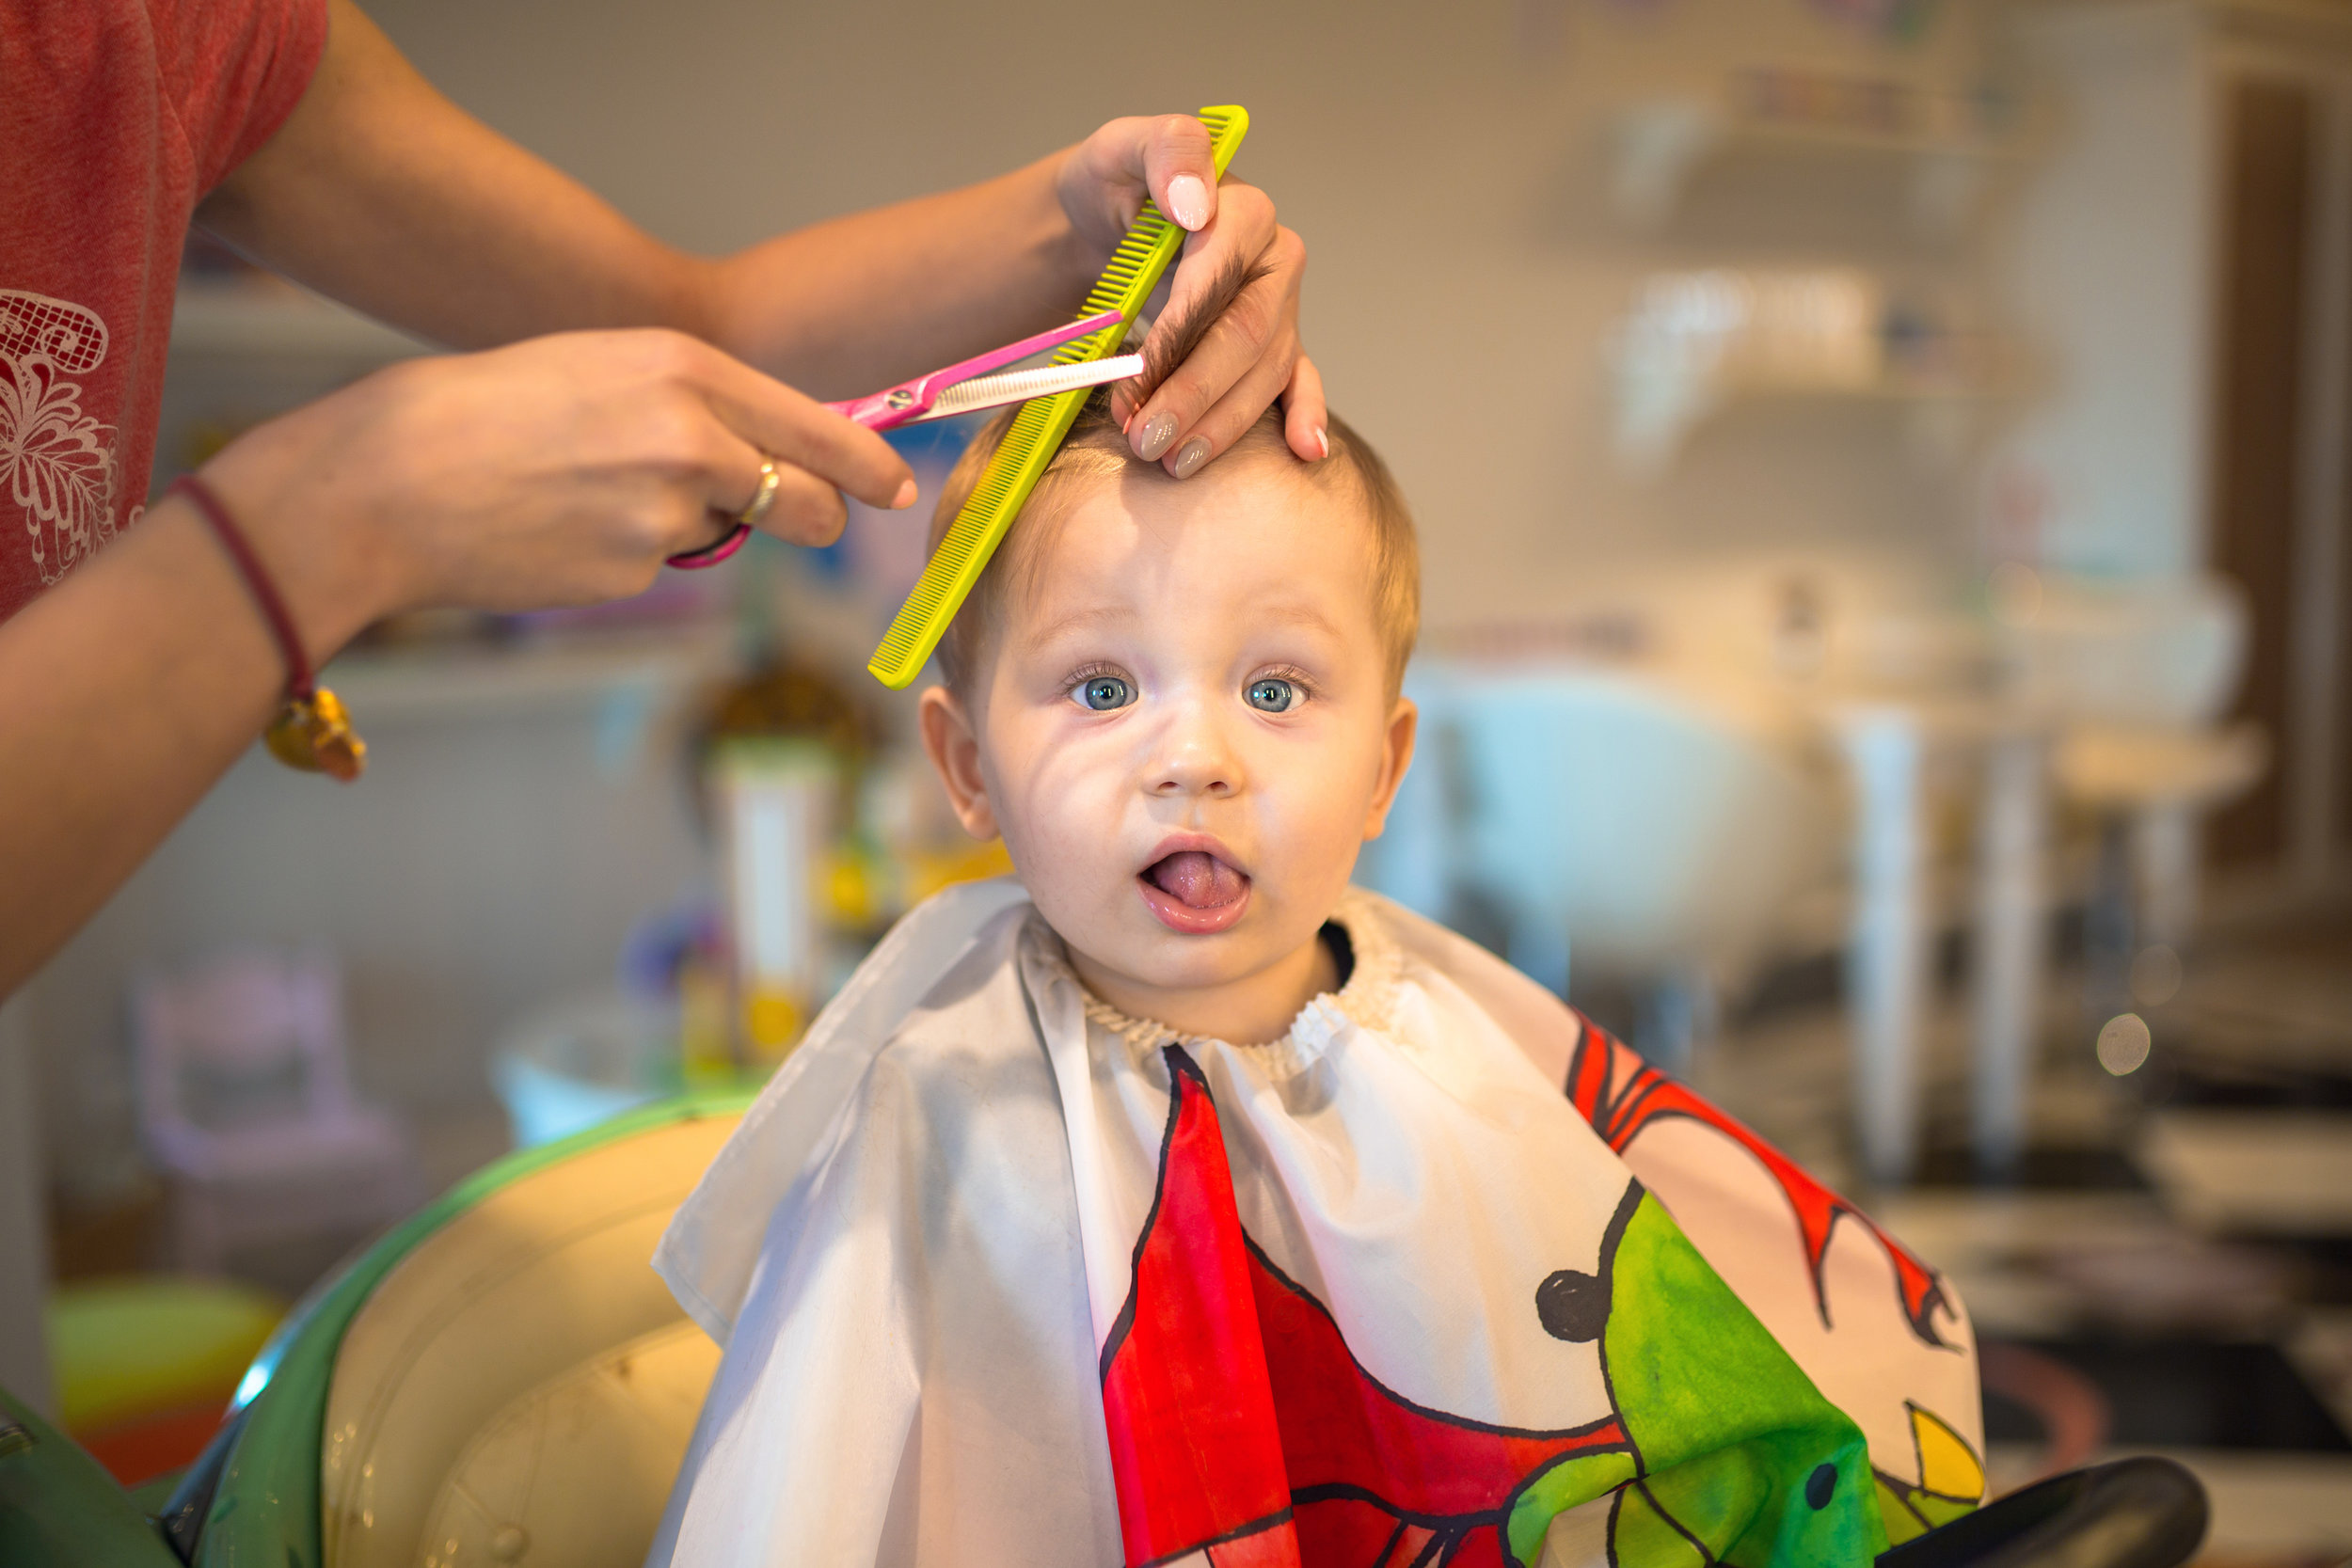 Stock photo 2 Child haircut.jpg